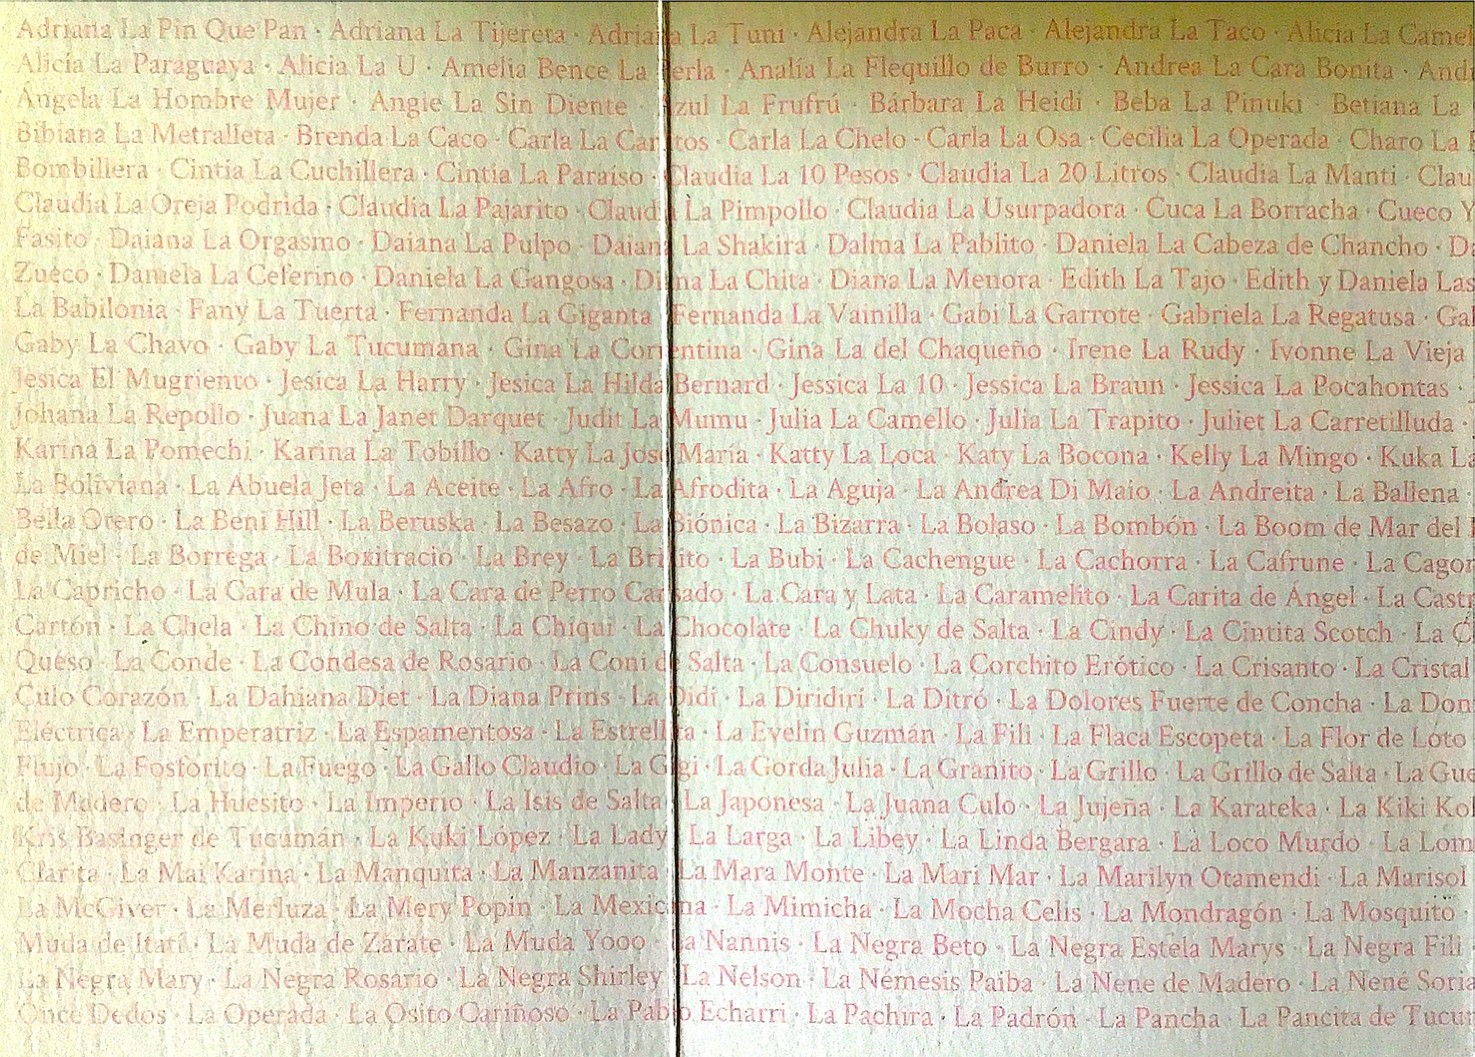 Foldout flap from the Archivo de la Memoria Trans Argentina